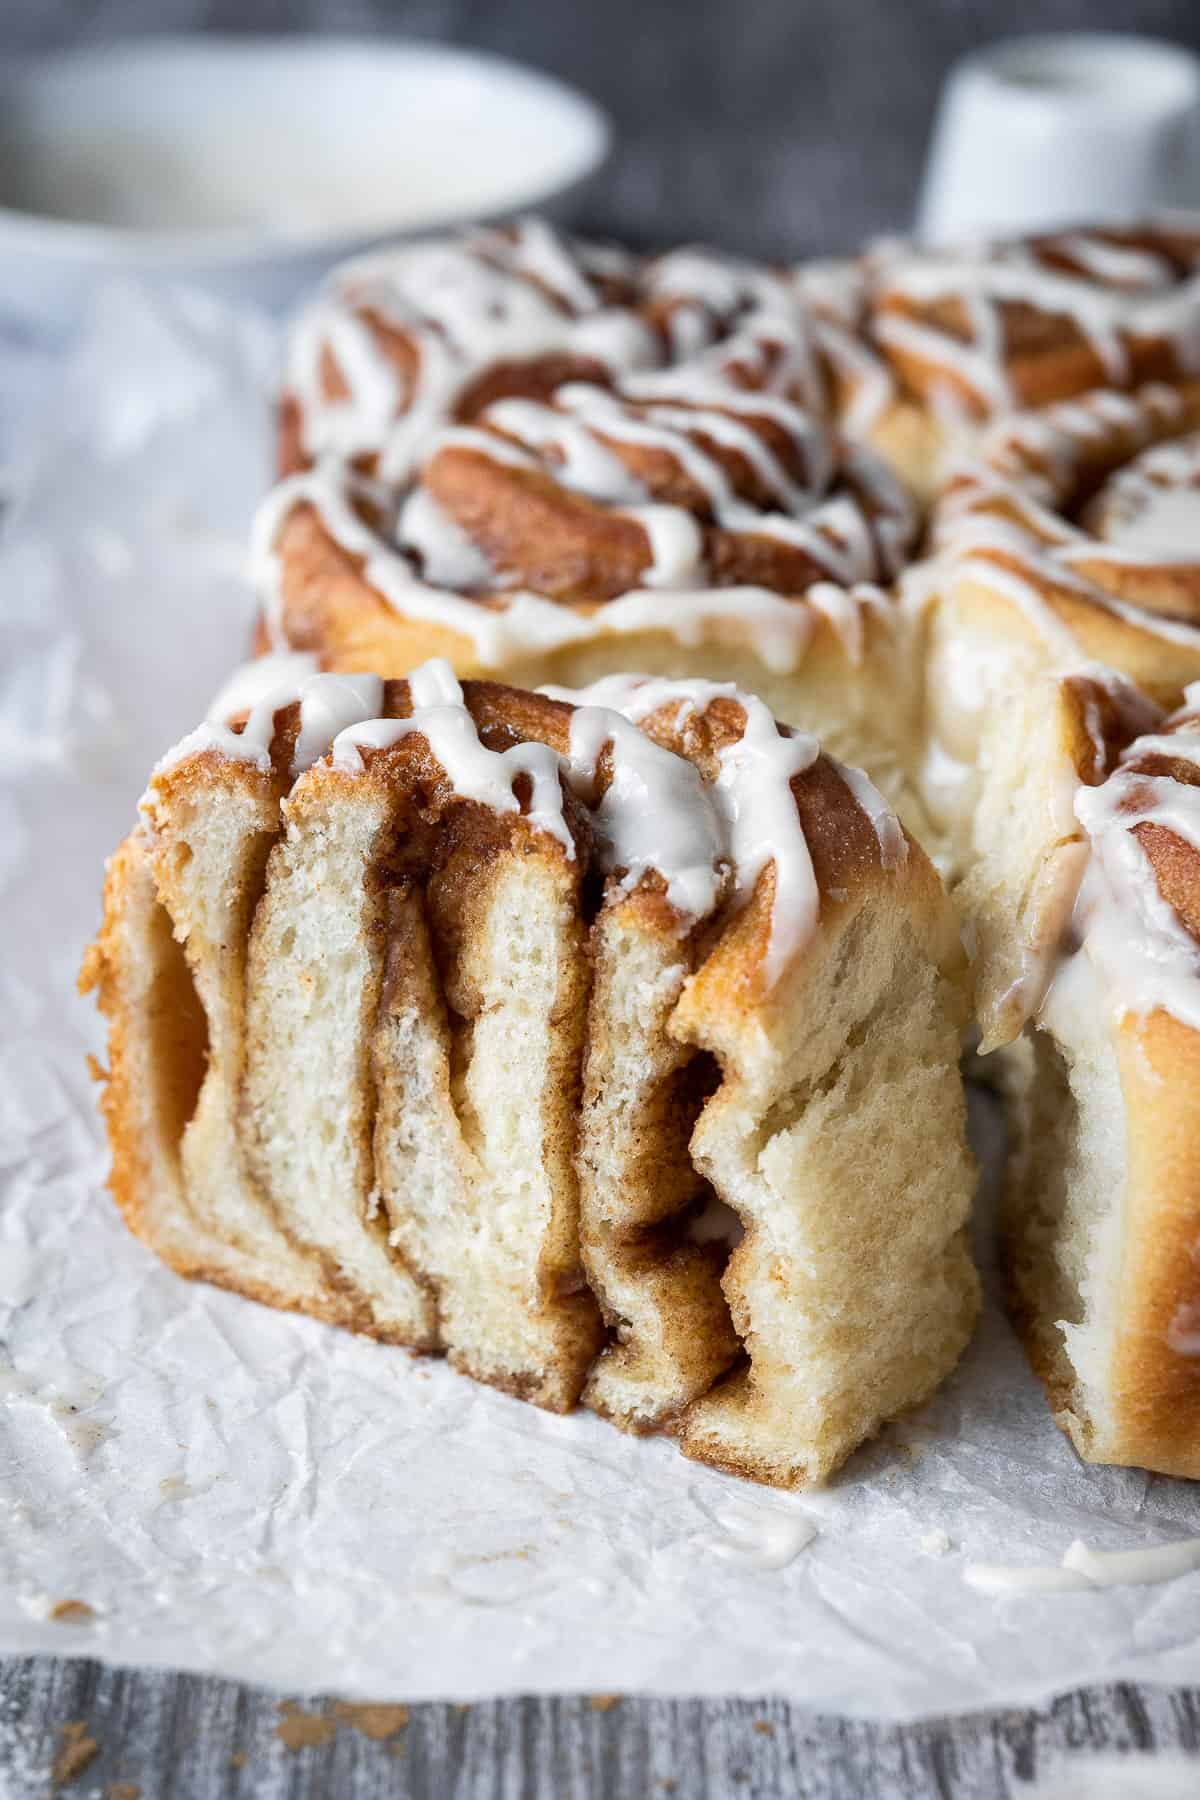 Close up of a cinnamon roll which has been sliced in half.